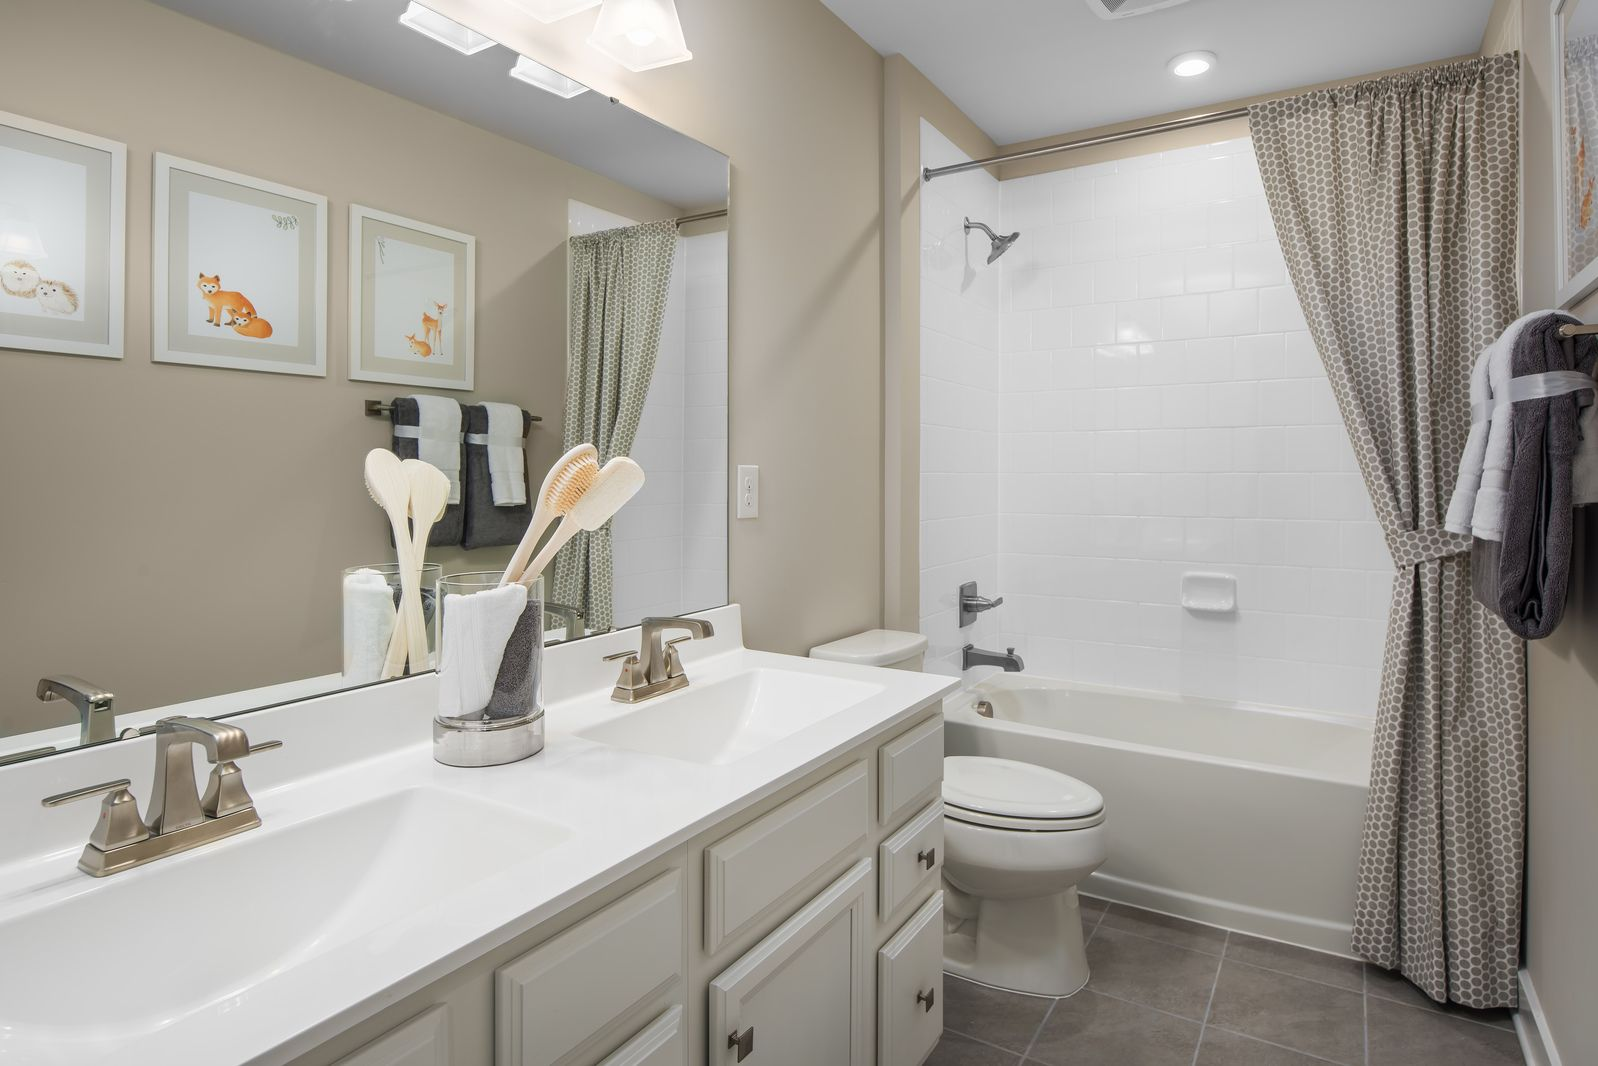 Bathroom featured in the Lehigh By Ryan Homes in Washington, MD